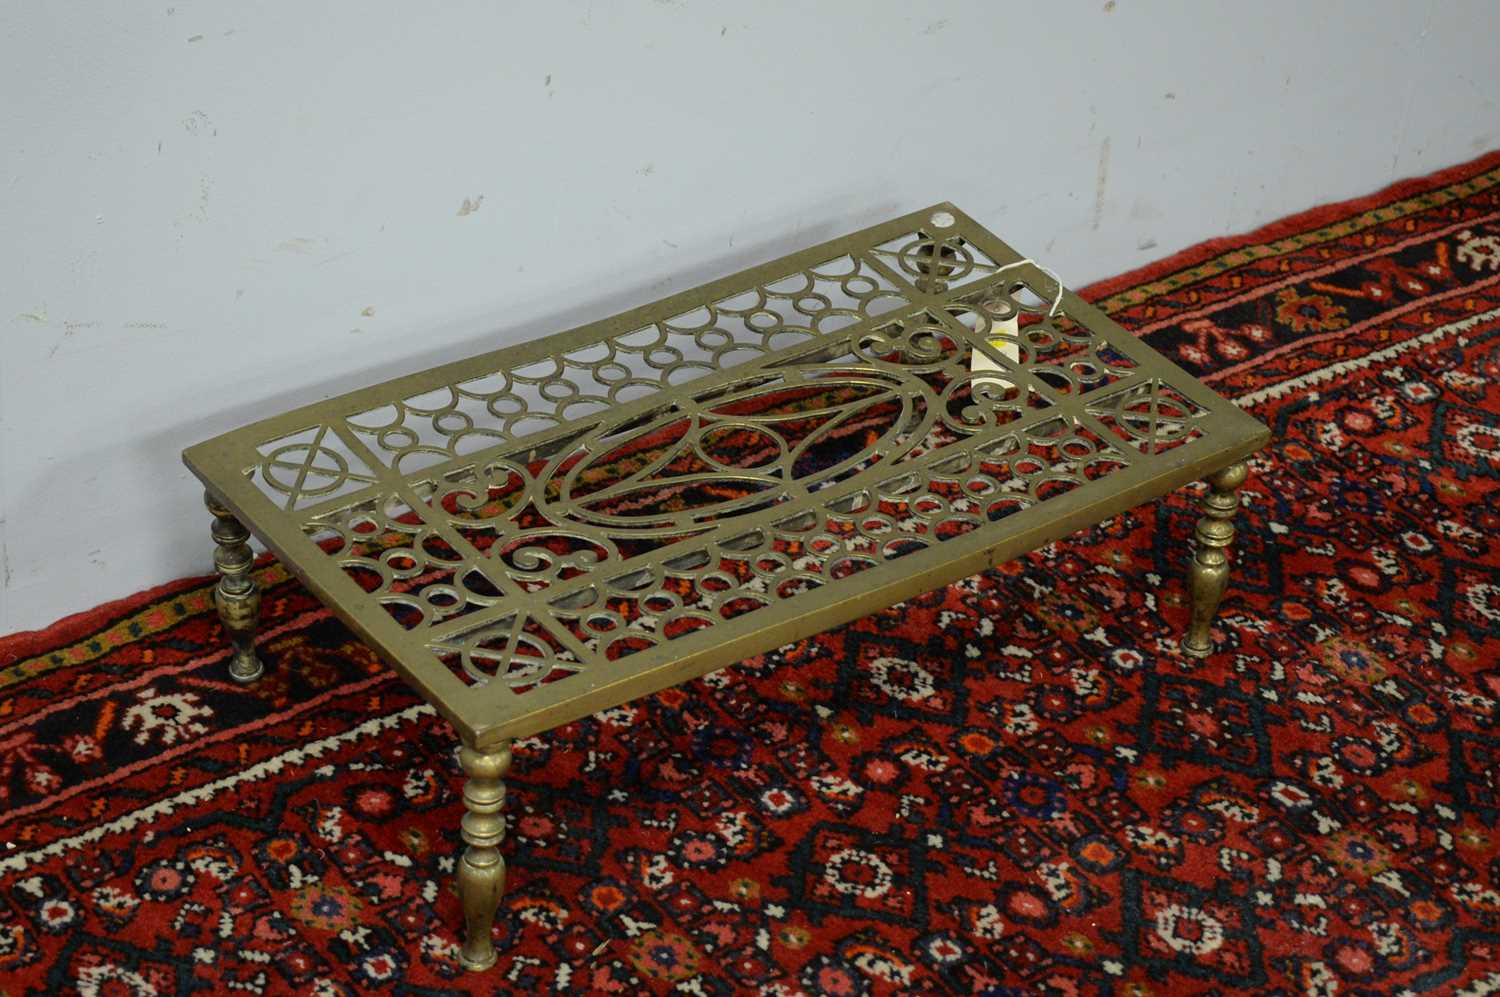 19th C brass trivet and fire curb - Image 3 of 3